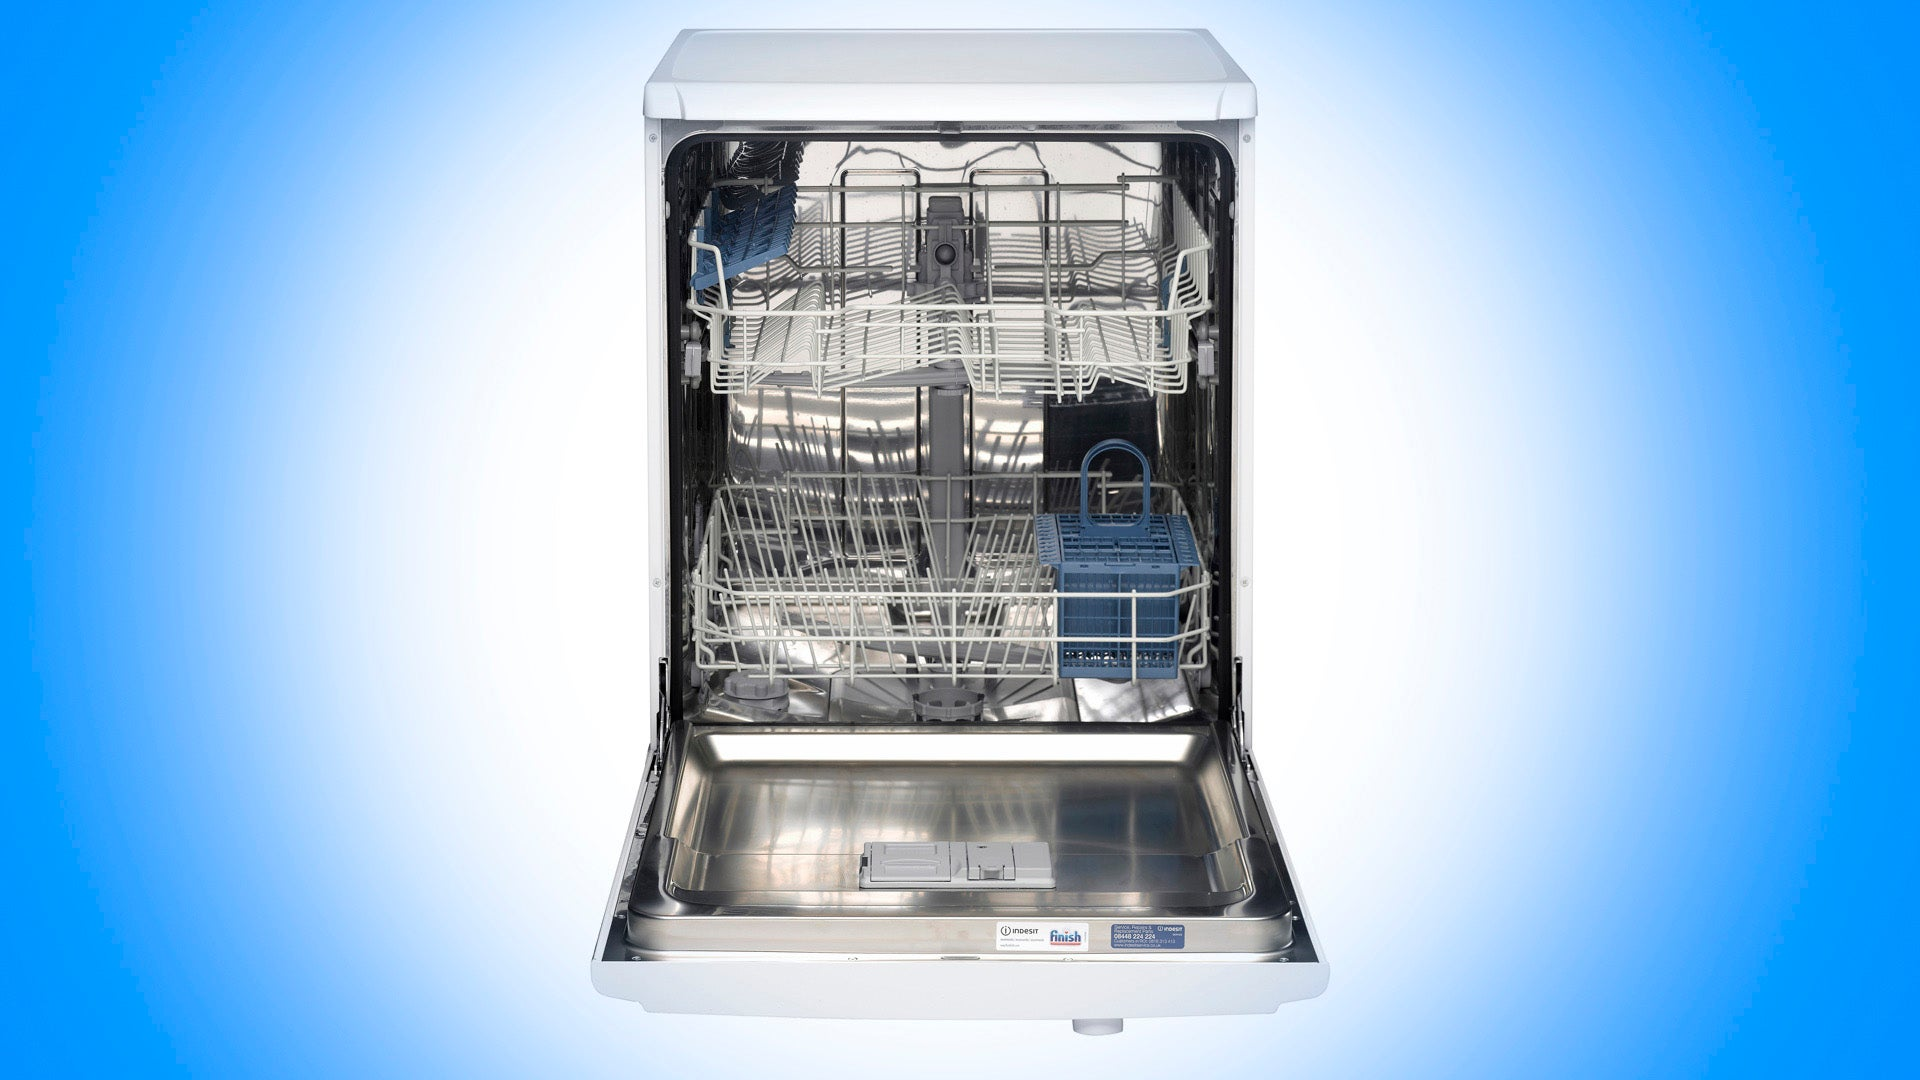 Best Dishwasher Under 500 2019 Best Dishwashers 2019: Clean dishes and cutlery automatically